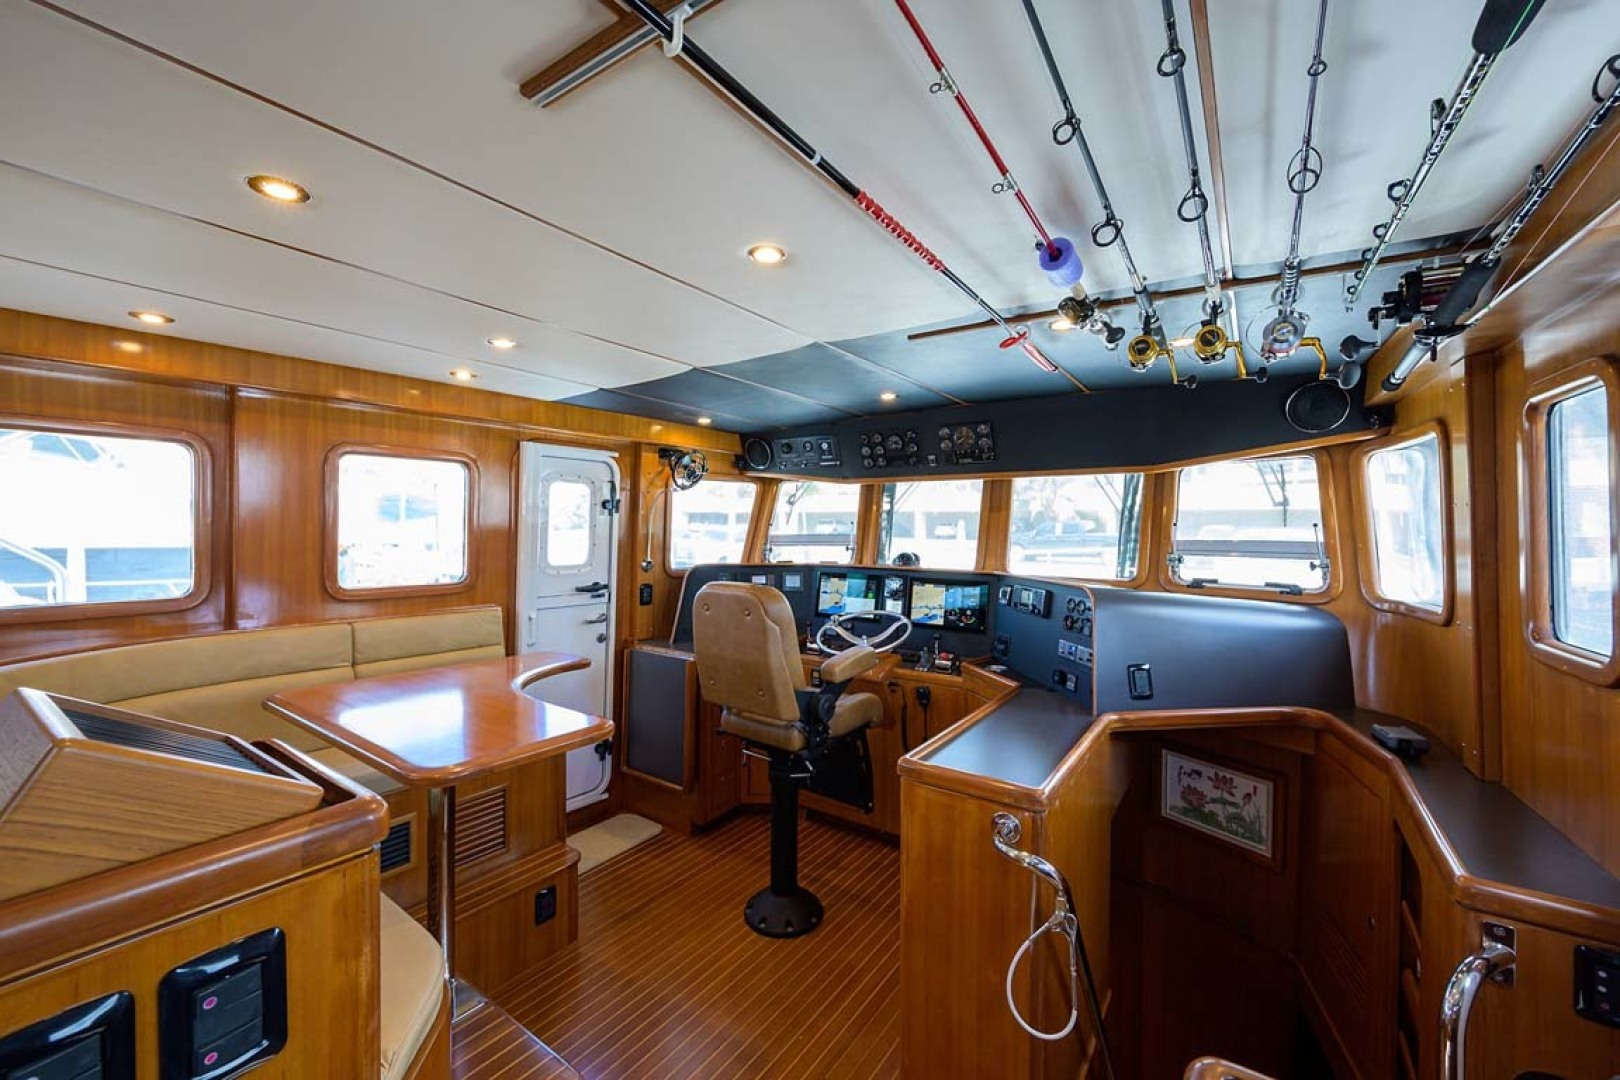 Nordhavn-47 2005-Fusion North Palm Beach-Florida-United States-Pilothouse with Rod Storage on the Ceiling-1424004 | Thumbnail